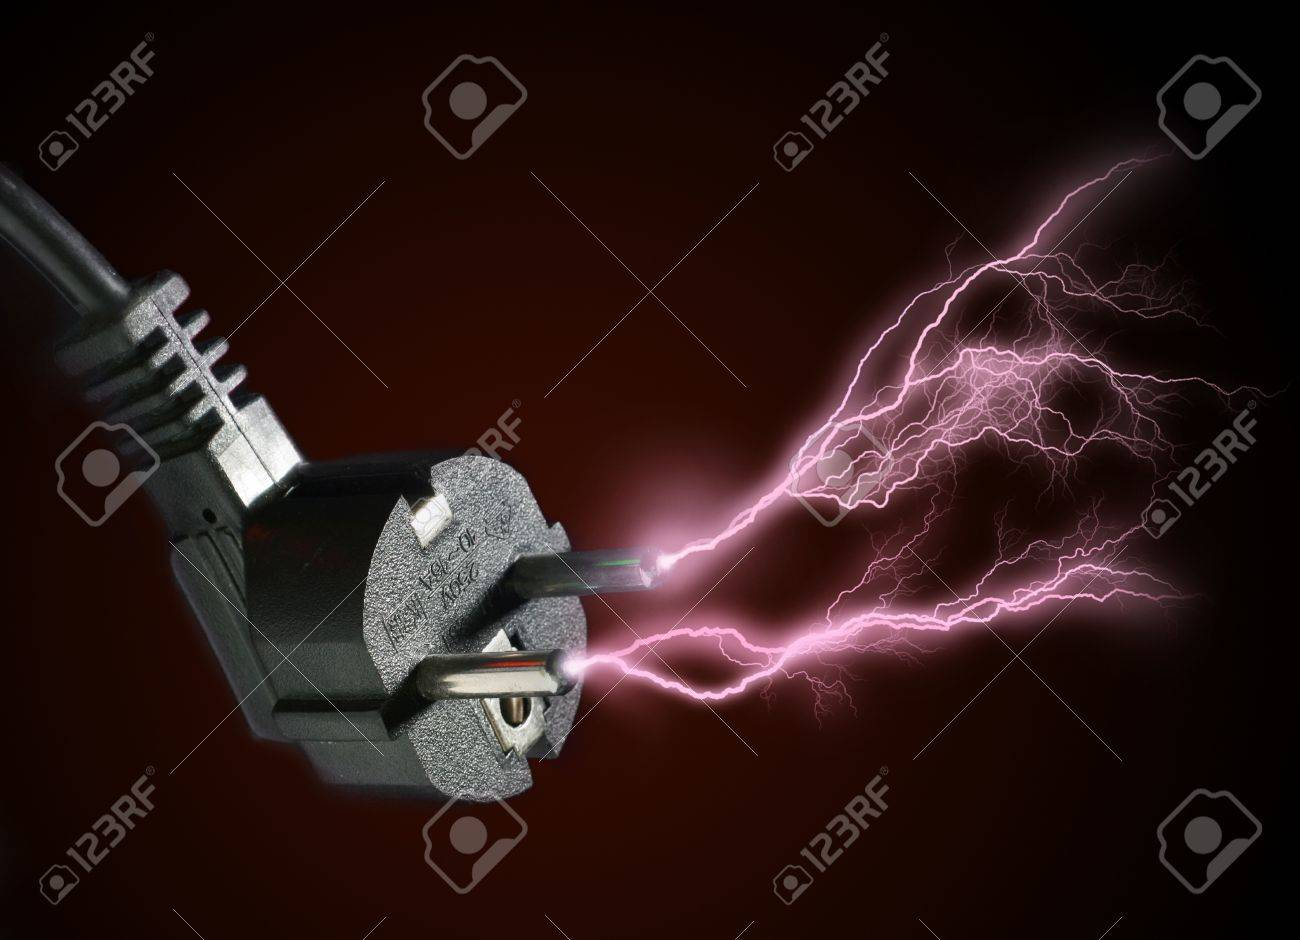 Plug and electric discharge over black background. Stock Photo - 8850752